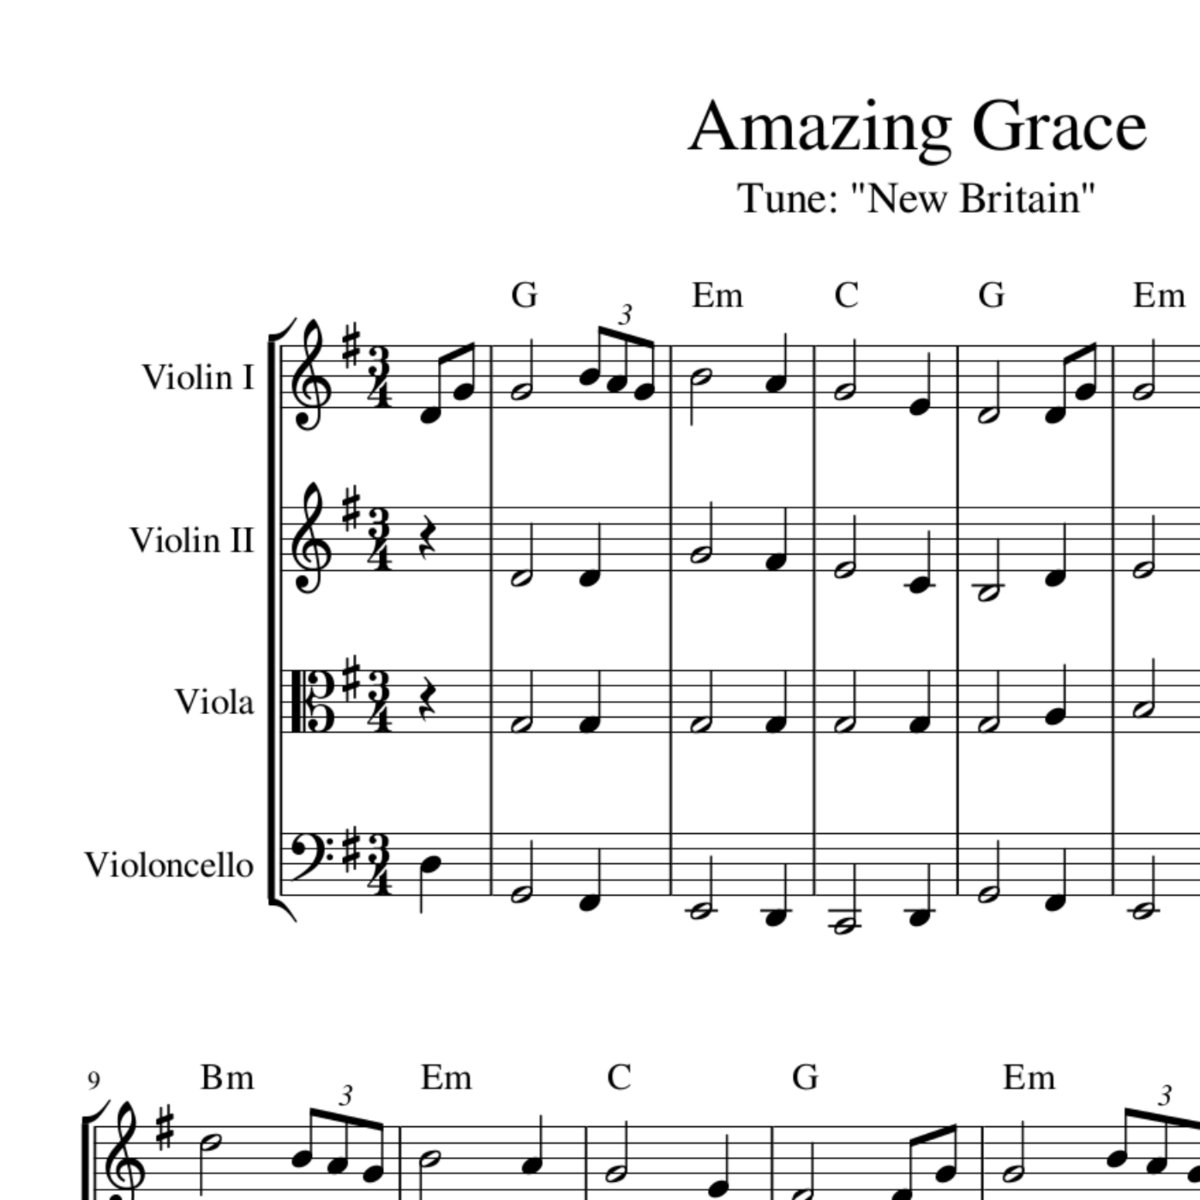 Amazing Grace: Sheet Music For String Quartet, Trio Or